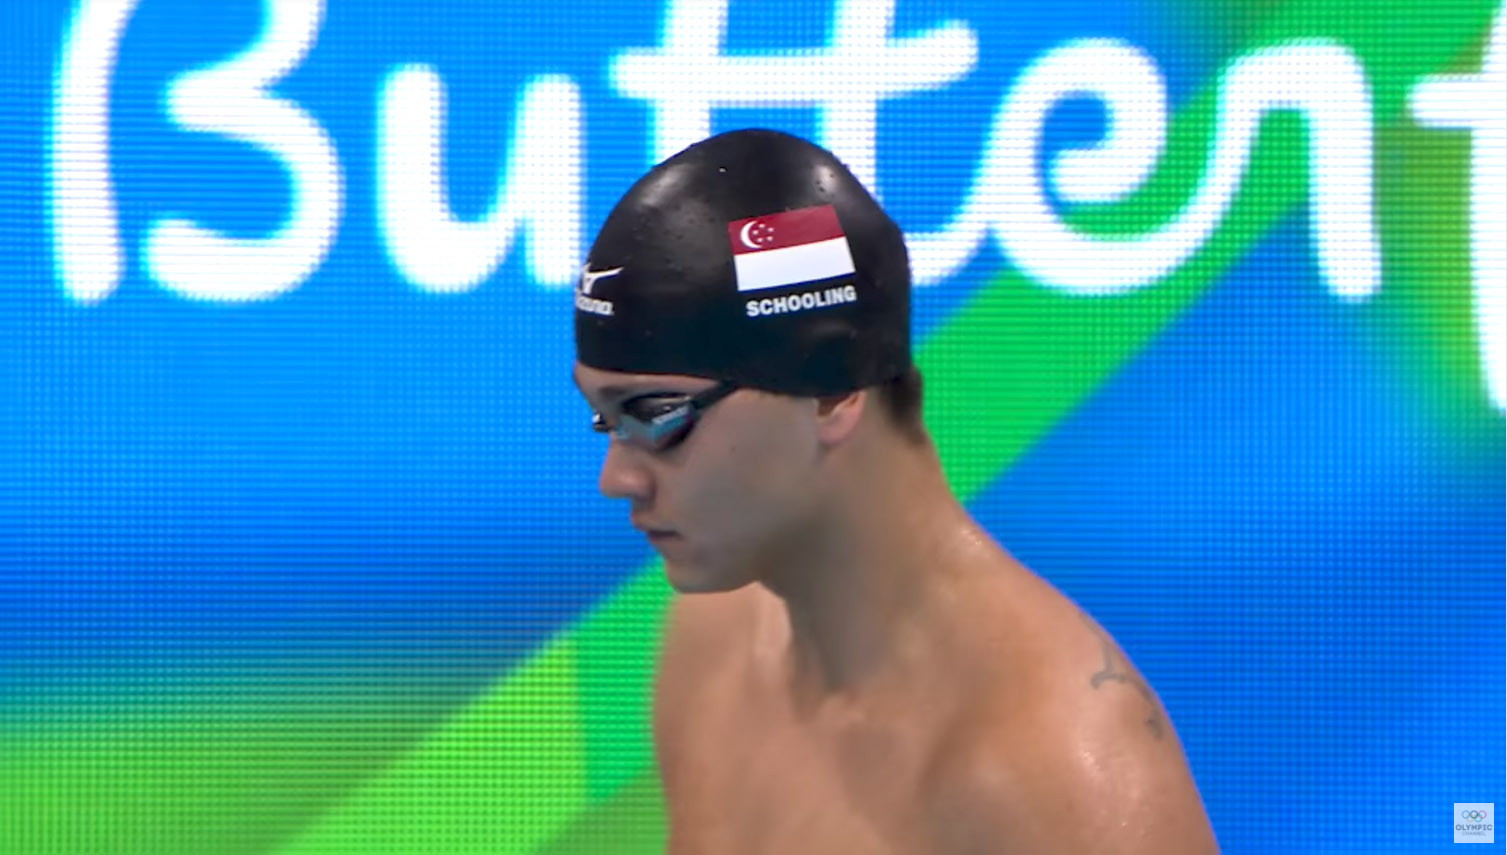 Rio_Swimming_Video-Board-1.jpg